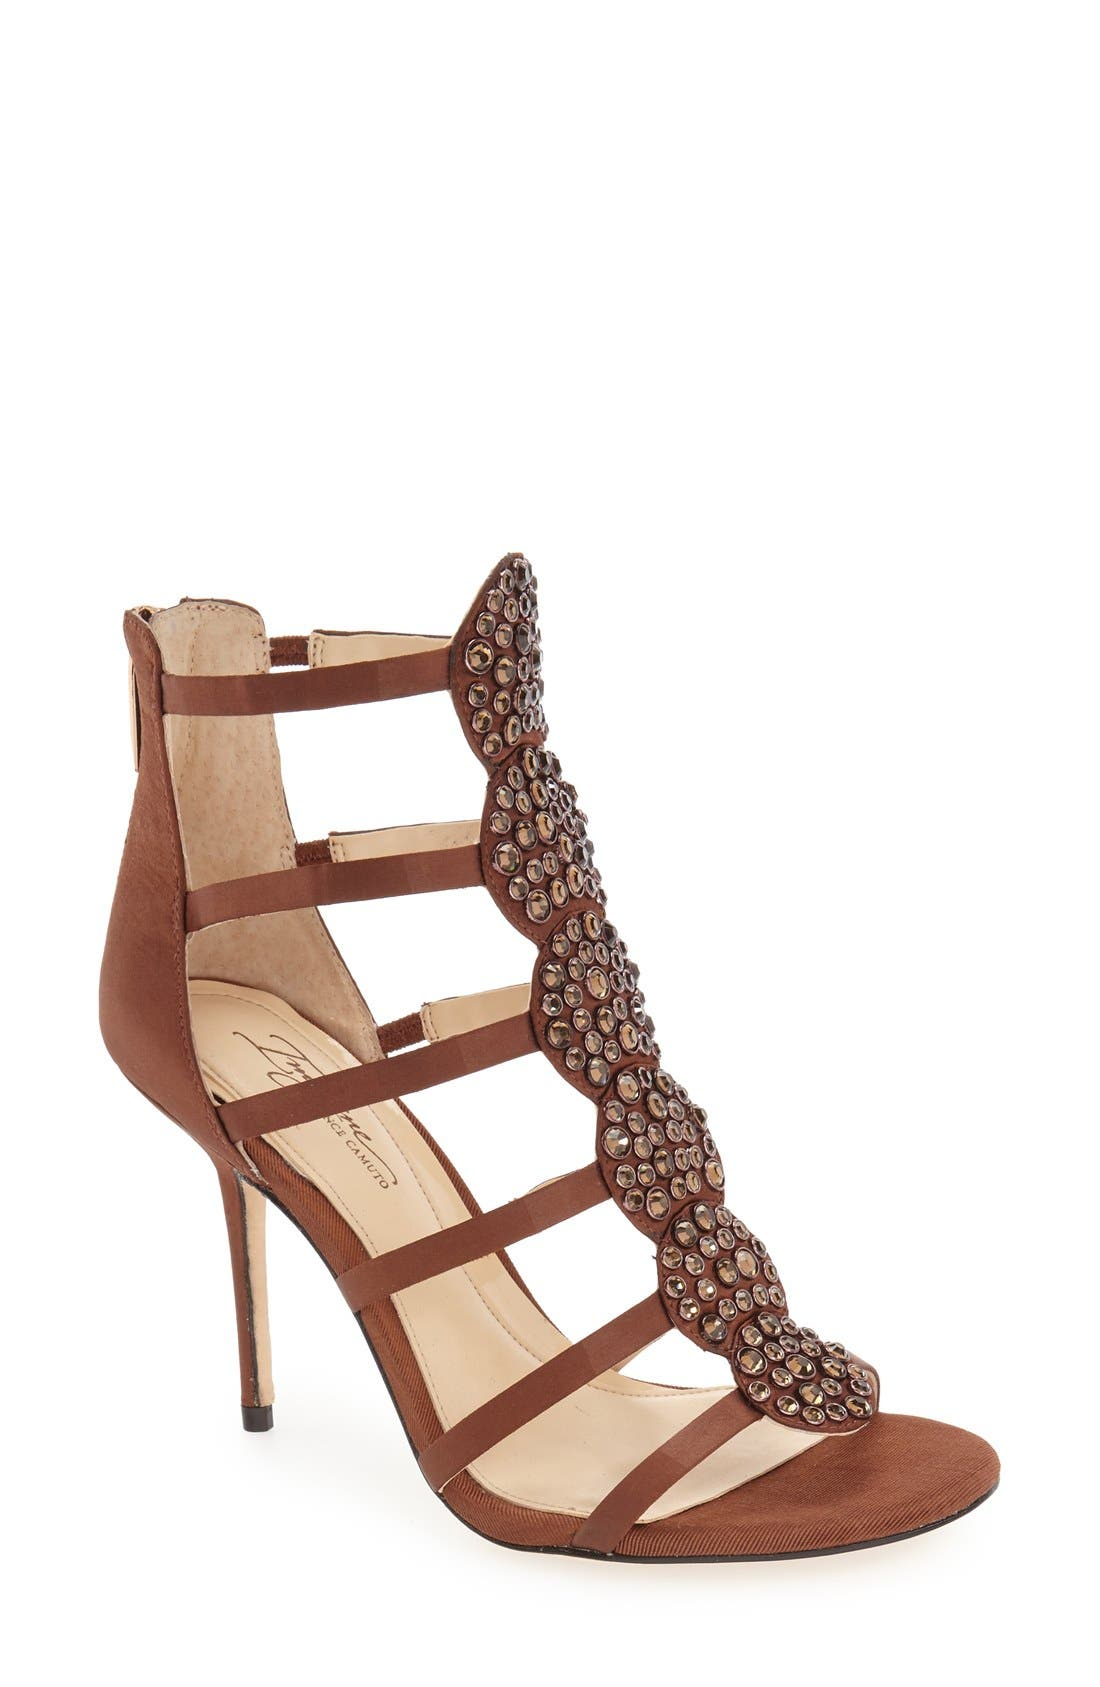 Alternate Image 1 Selected - Imagine by Vince Camuto 'Reya' Crystal Sandal (Women)